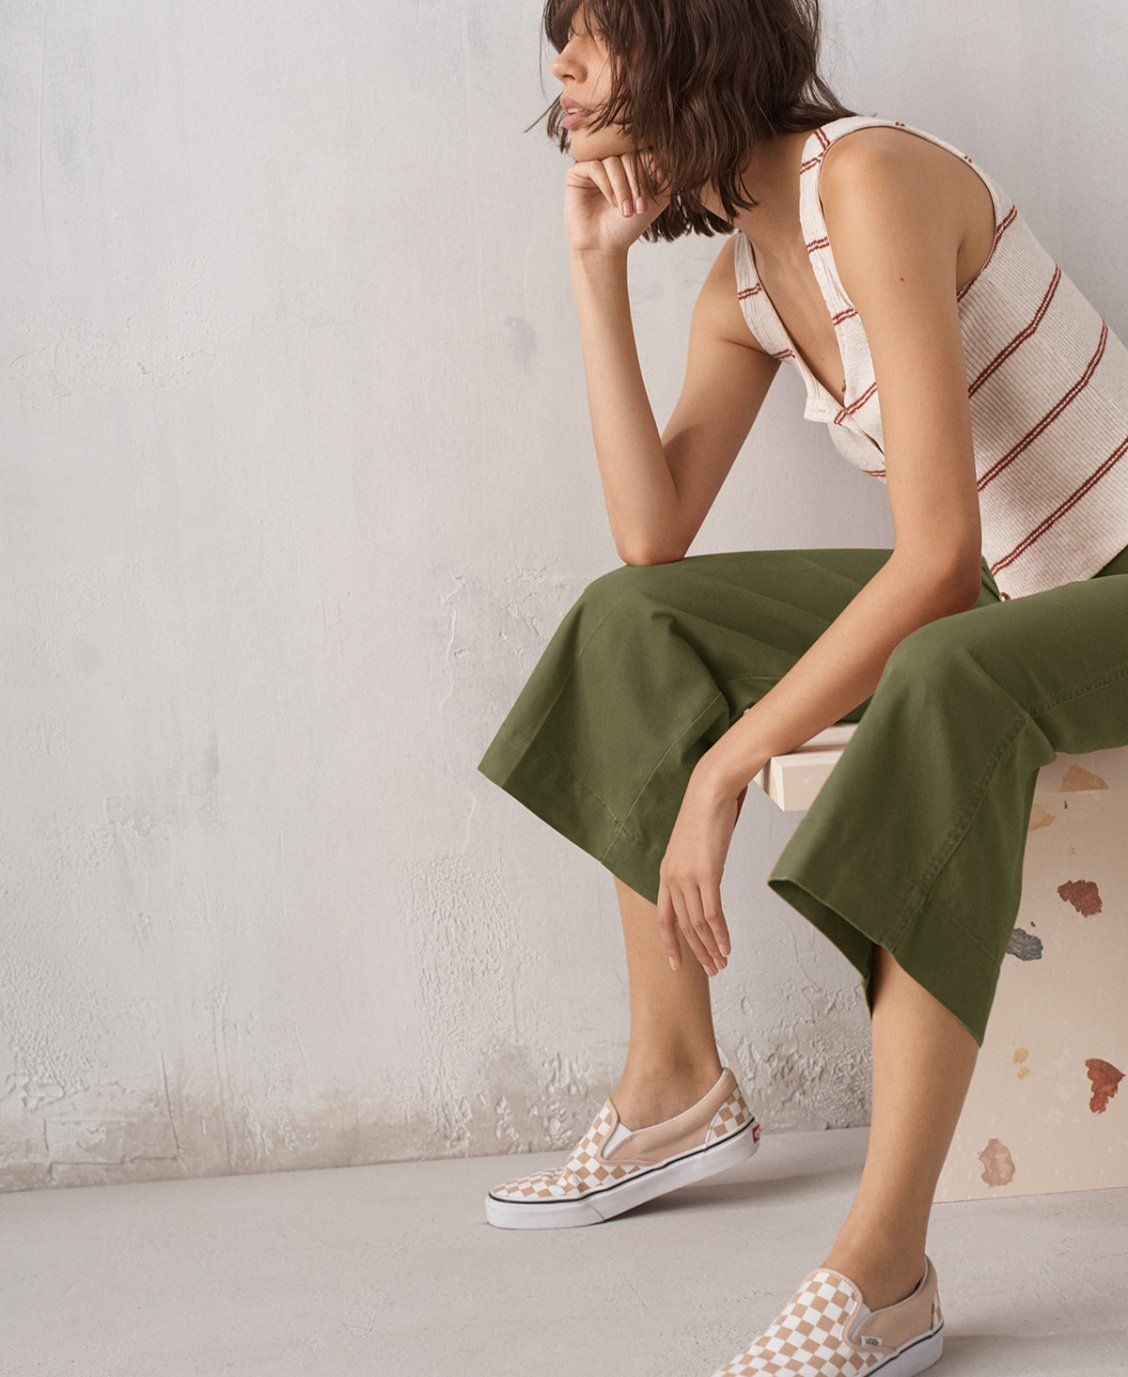 c2b827be4a1954 madewell emmett wide-leg crop pants worn with ribbed button-front tank top  + vans slip-on sneakers.